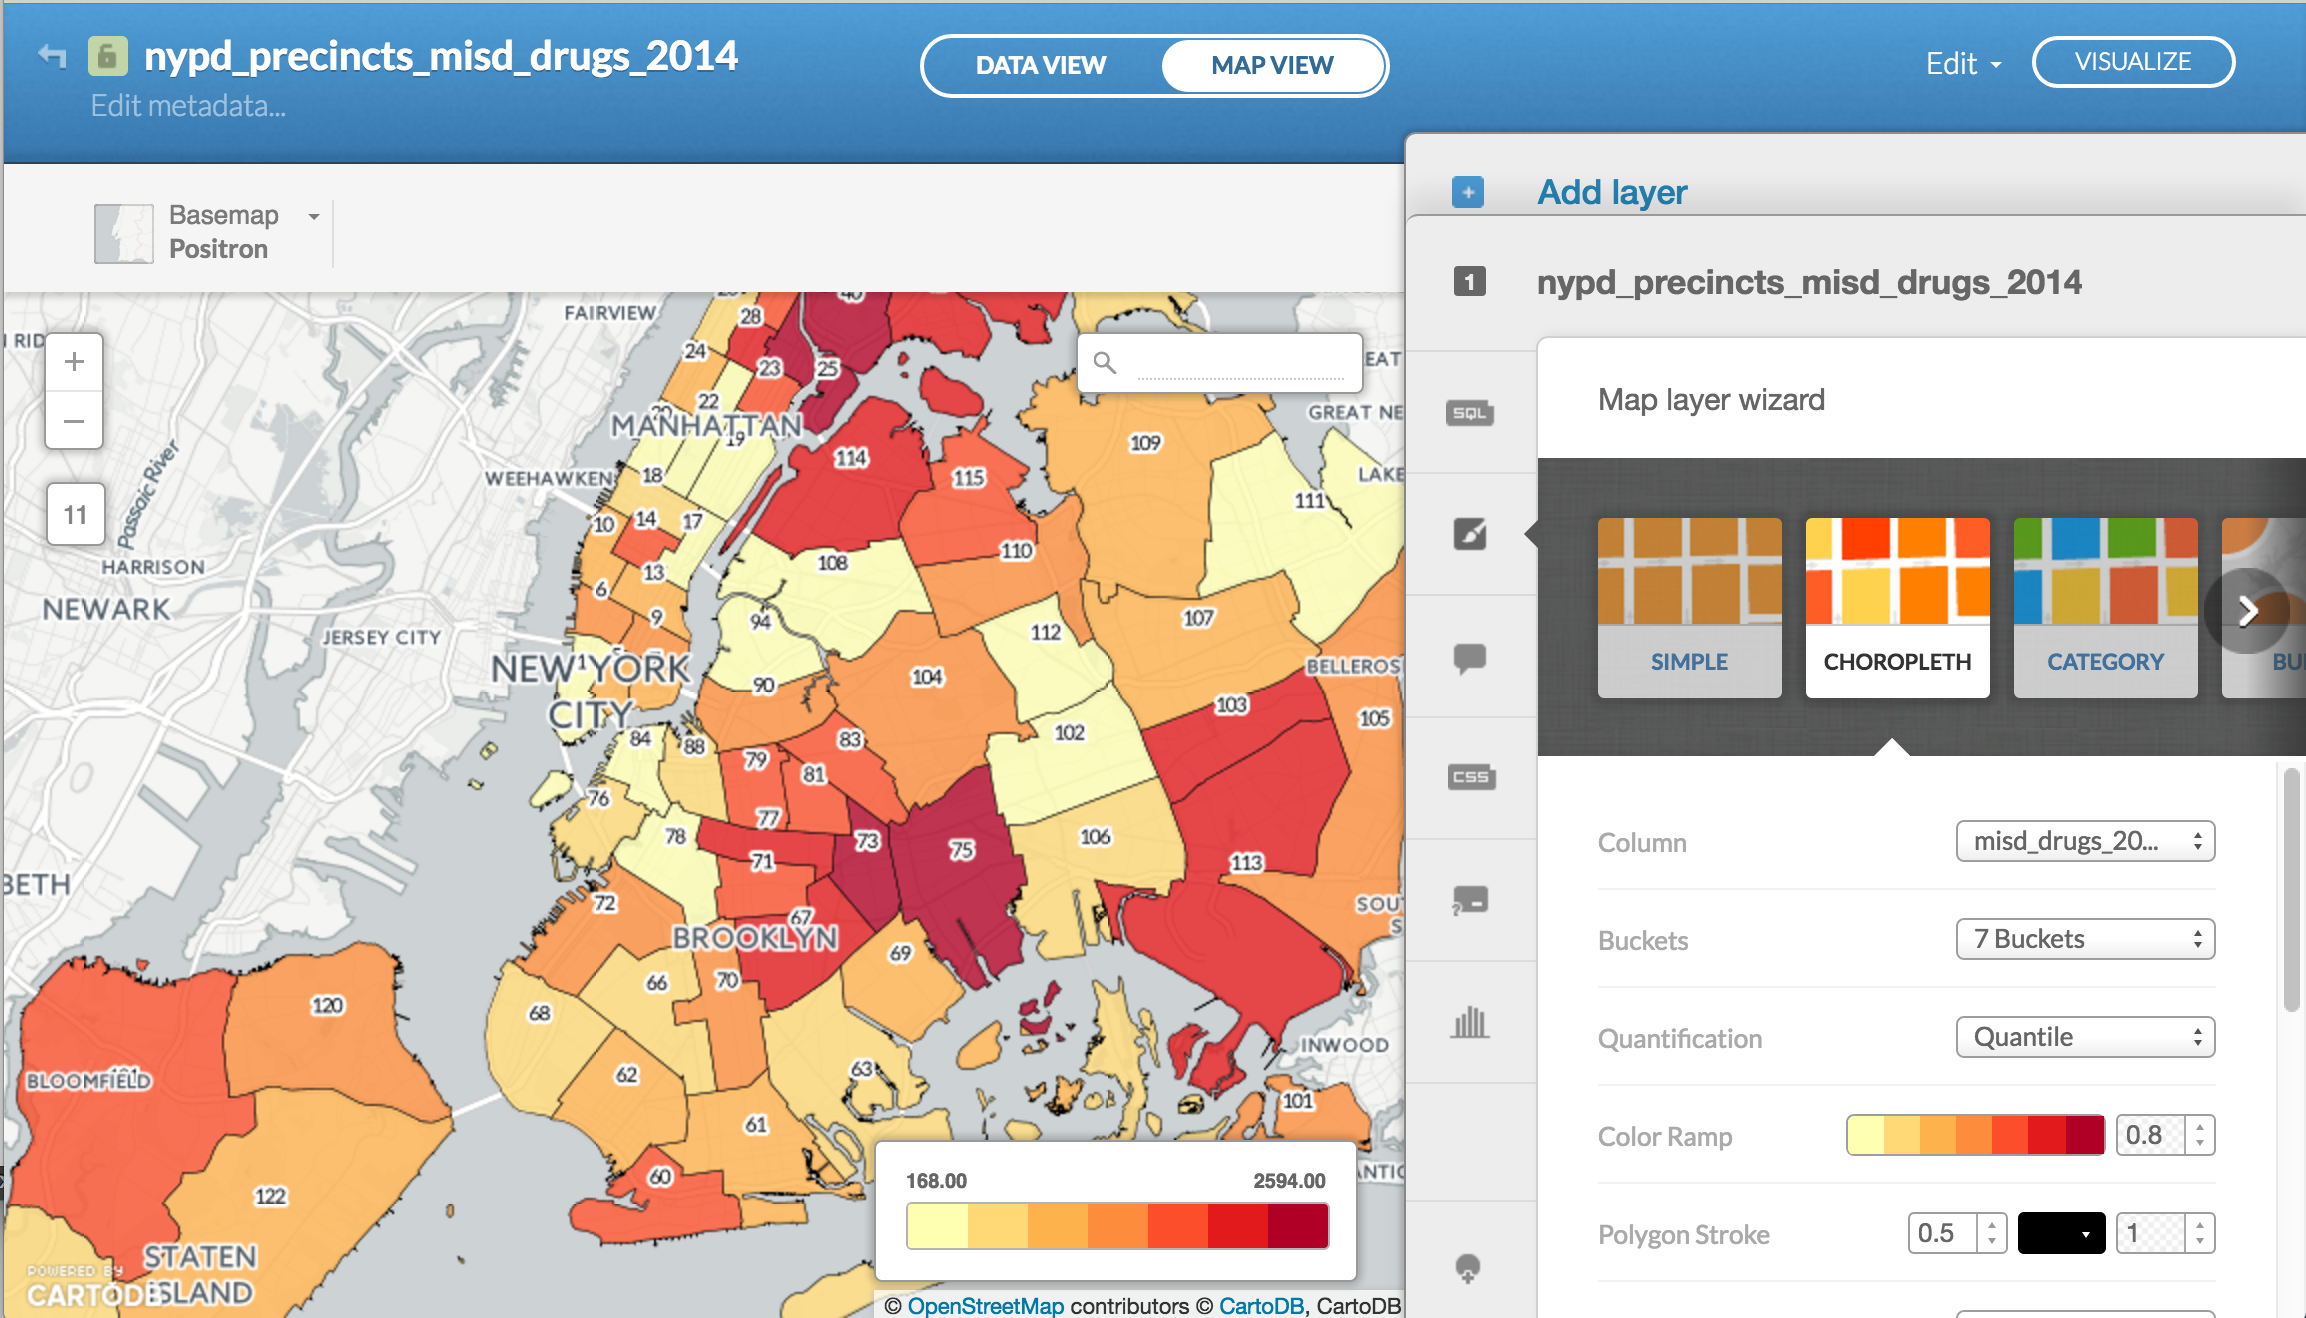 image choropleth-configuration-for-precinct-misd-drugs-2014.png